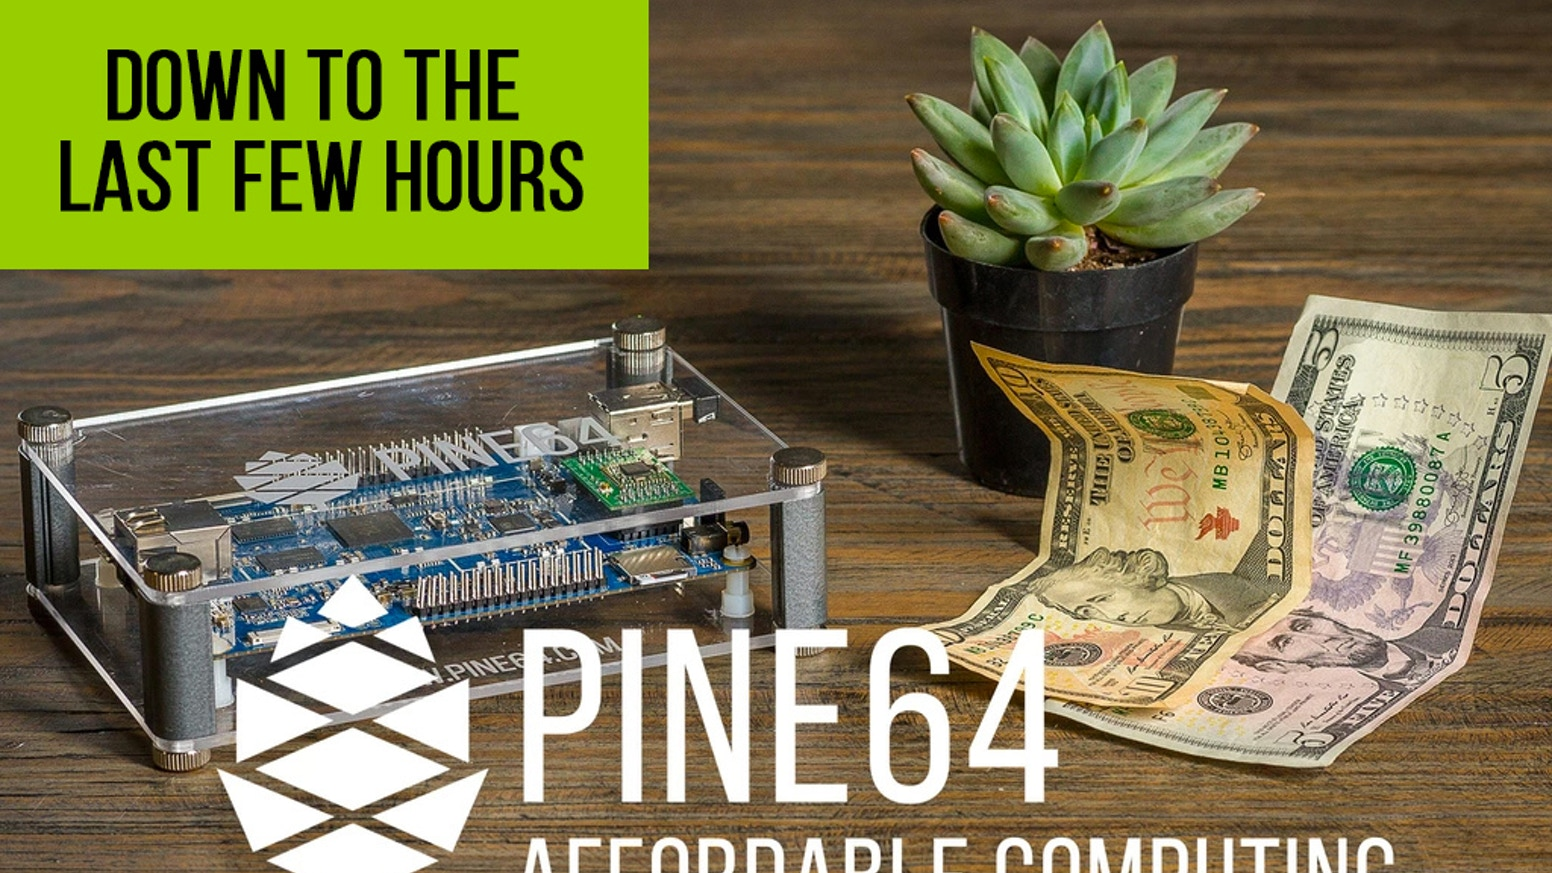 Pine A64 First 15 64 Bit Single Board Super Computer By Pine64 Inc Circuit Picture Frame Geek Armory Is The Worlds Expandable Quad Core 12ghz Supercomputer